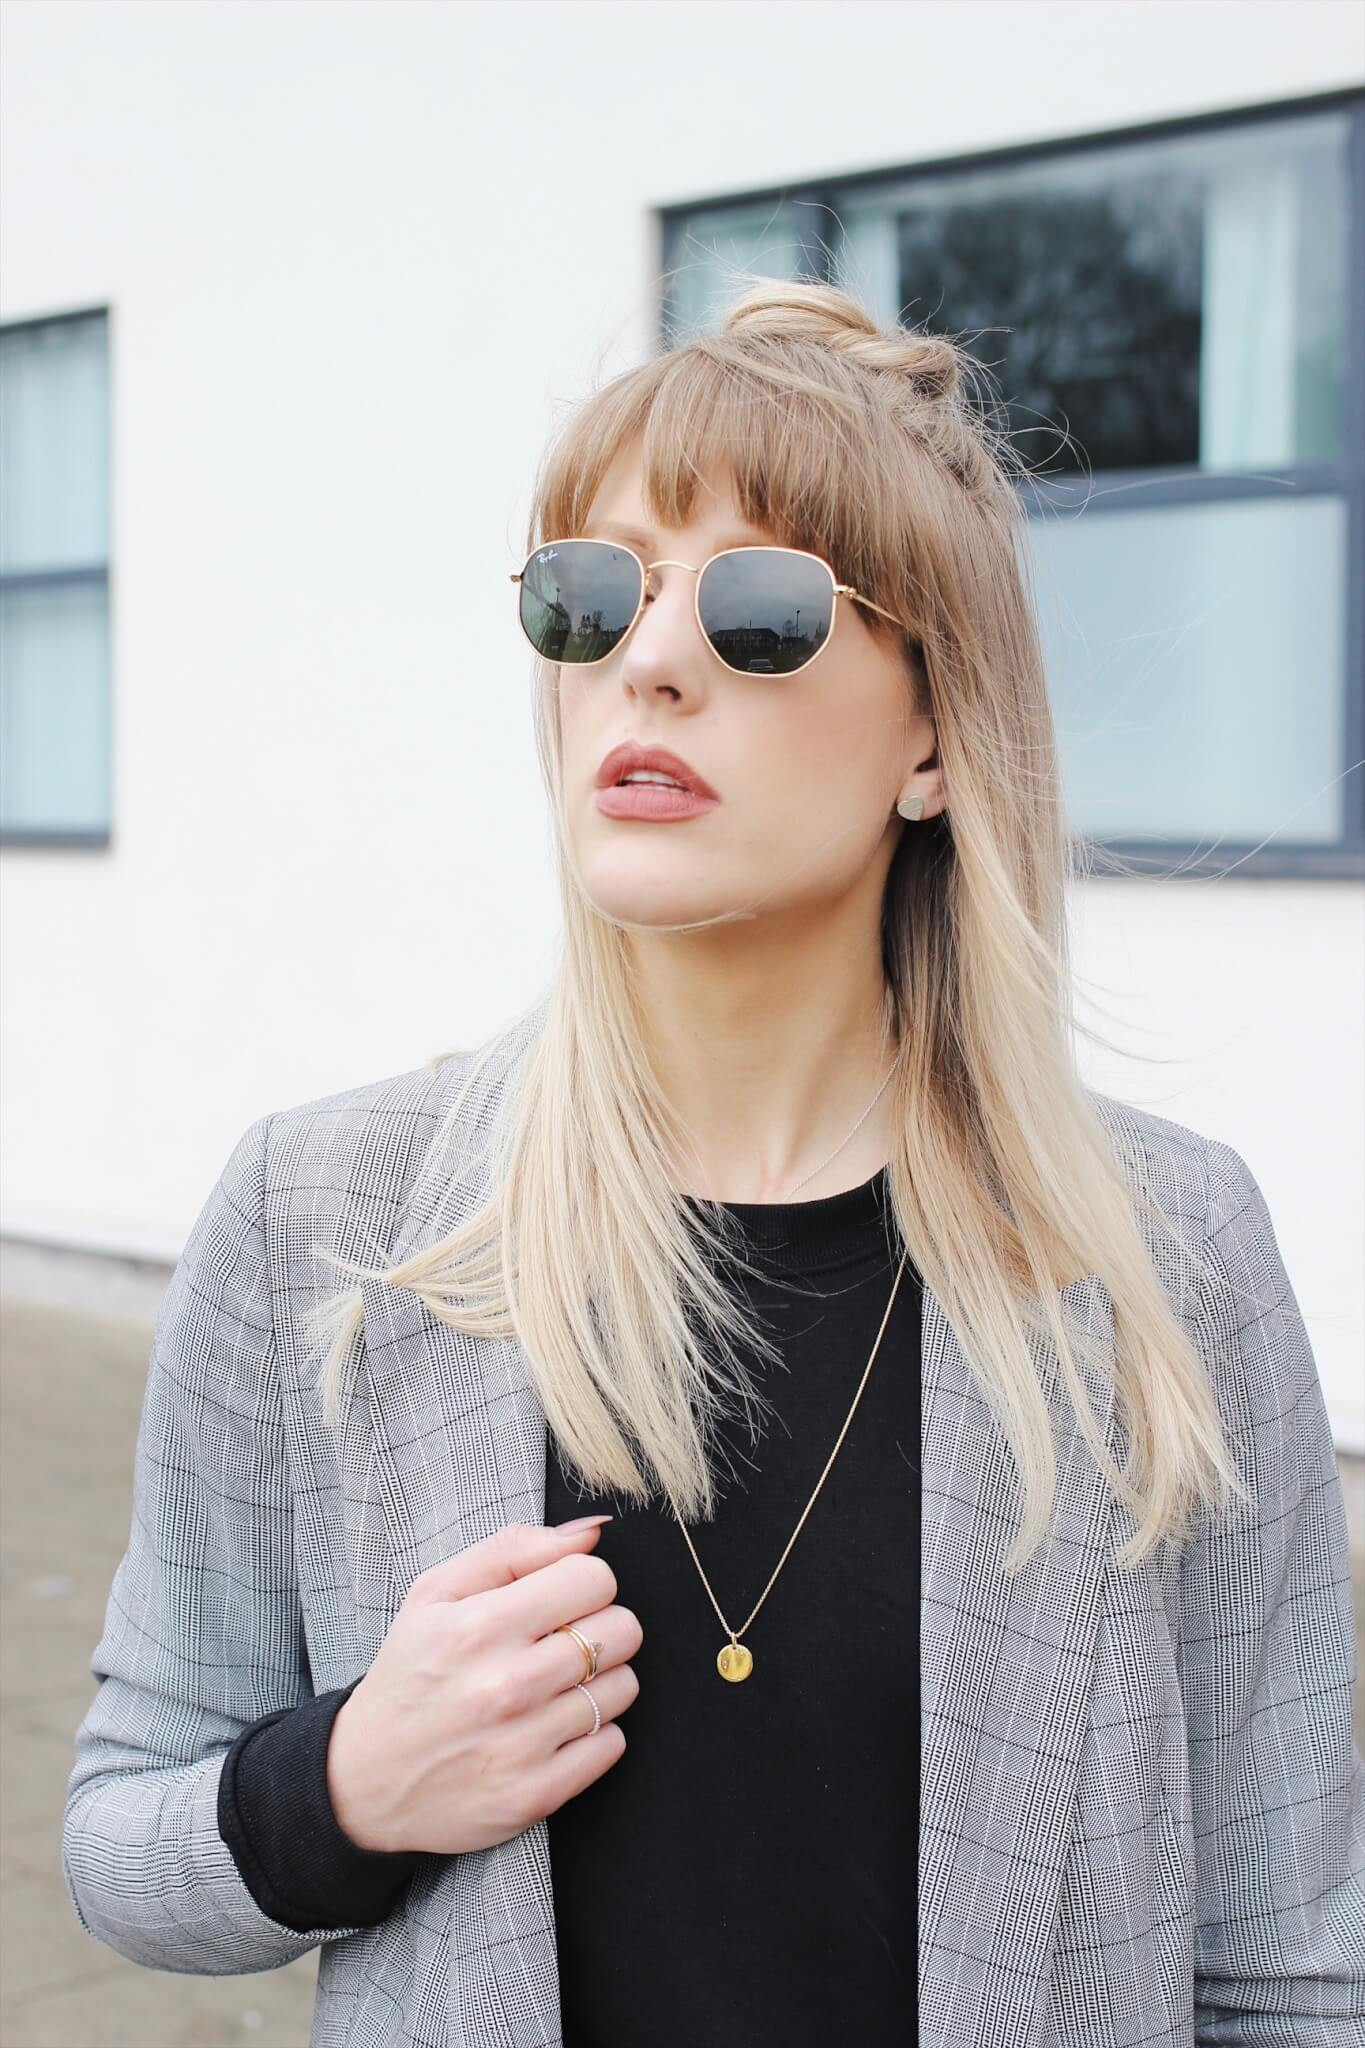 THOMAS SABO mixing gold and silver jewellery